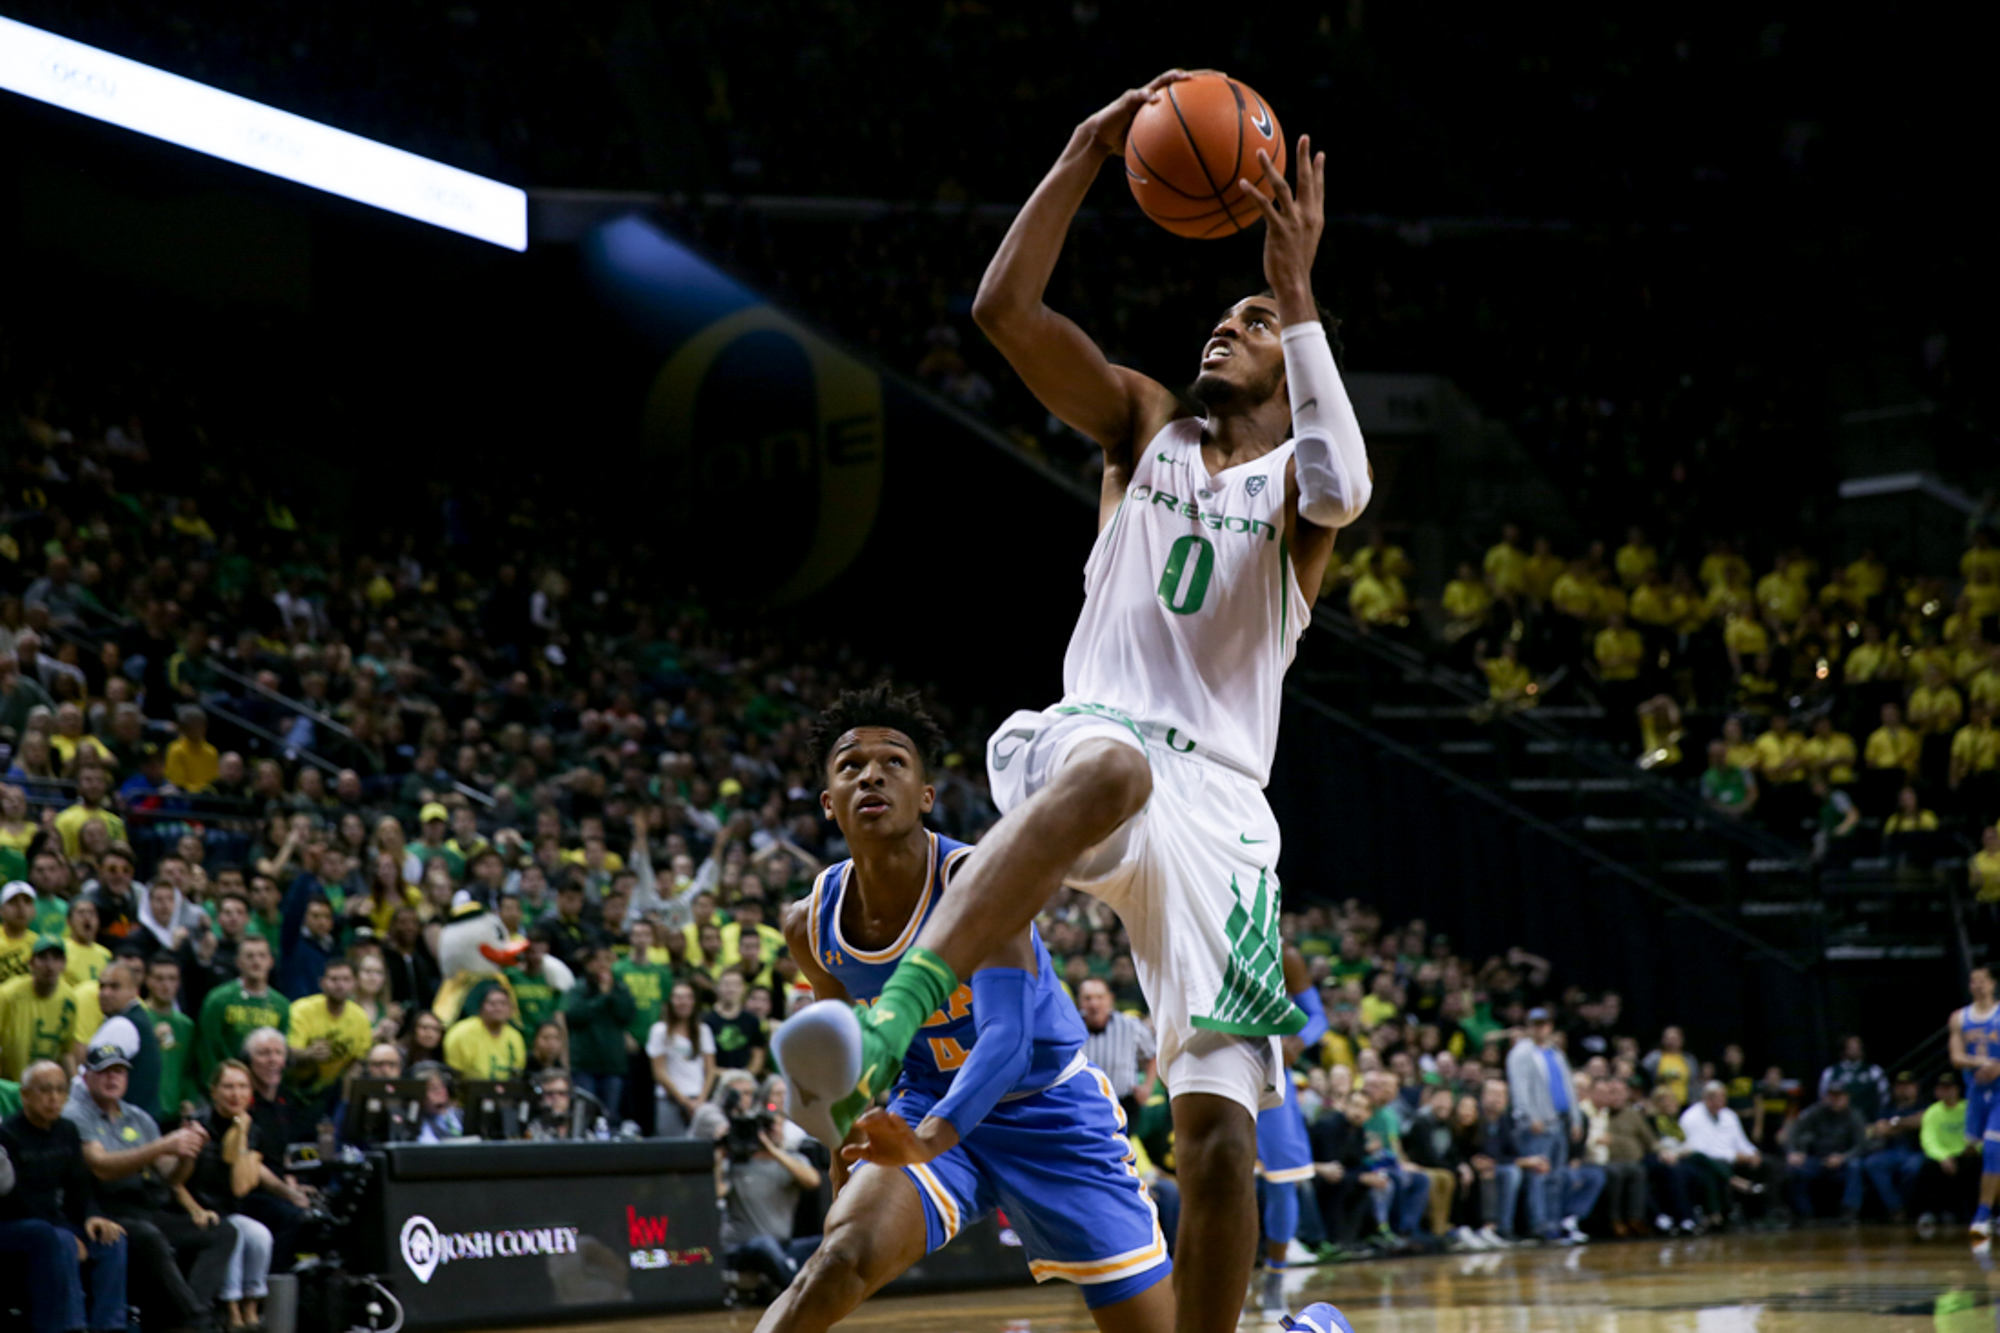 Forward Troy Brown looks to shoot. Oregon basketball plays the UCLA Bruins at Matthew Knight Arena in Eugene, Ore. on Jan. 20, 2018. (Natalie Waitt-Gibson/Emerald)